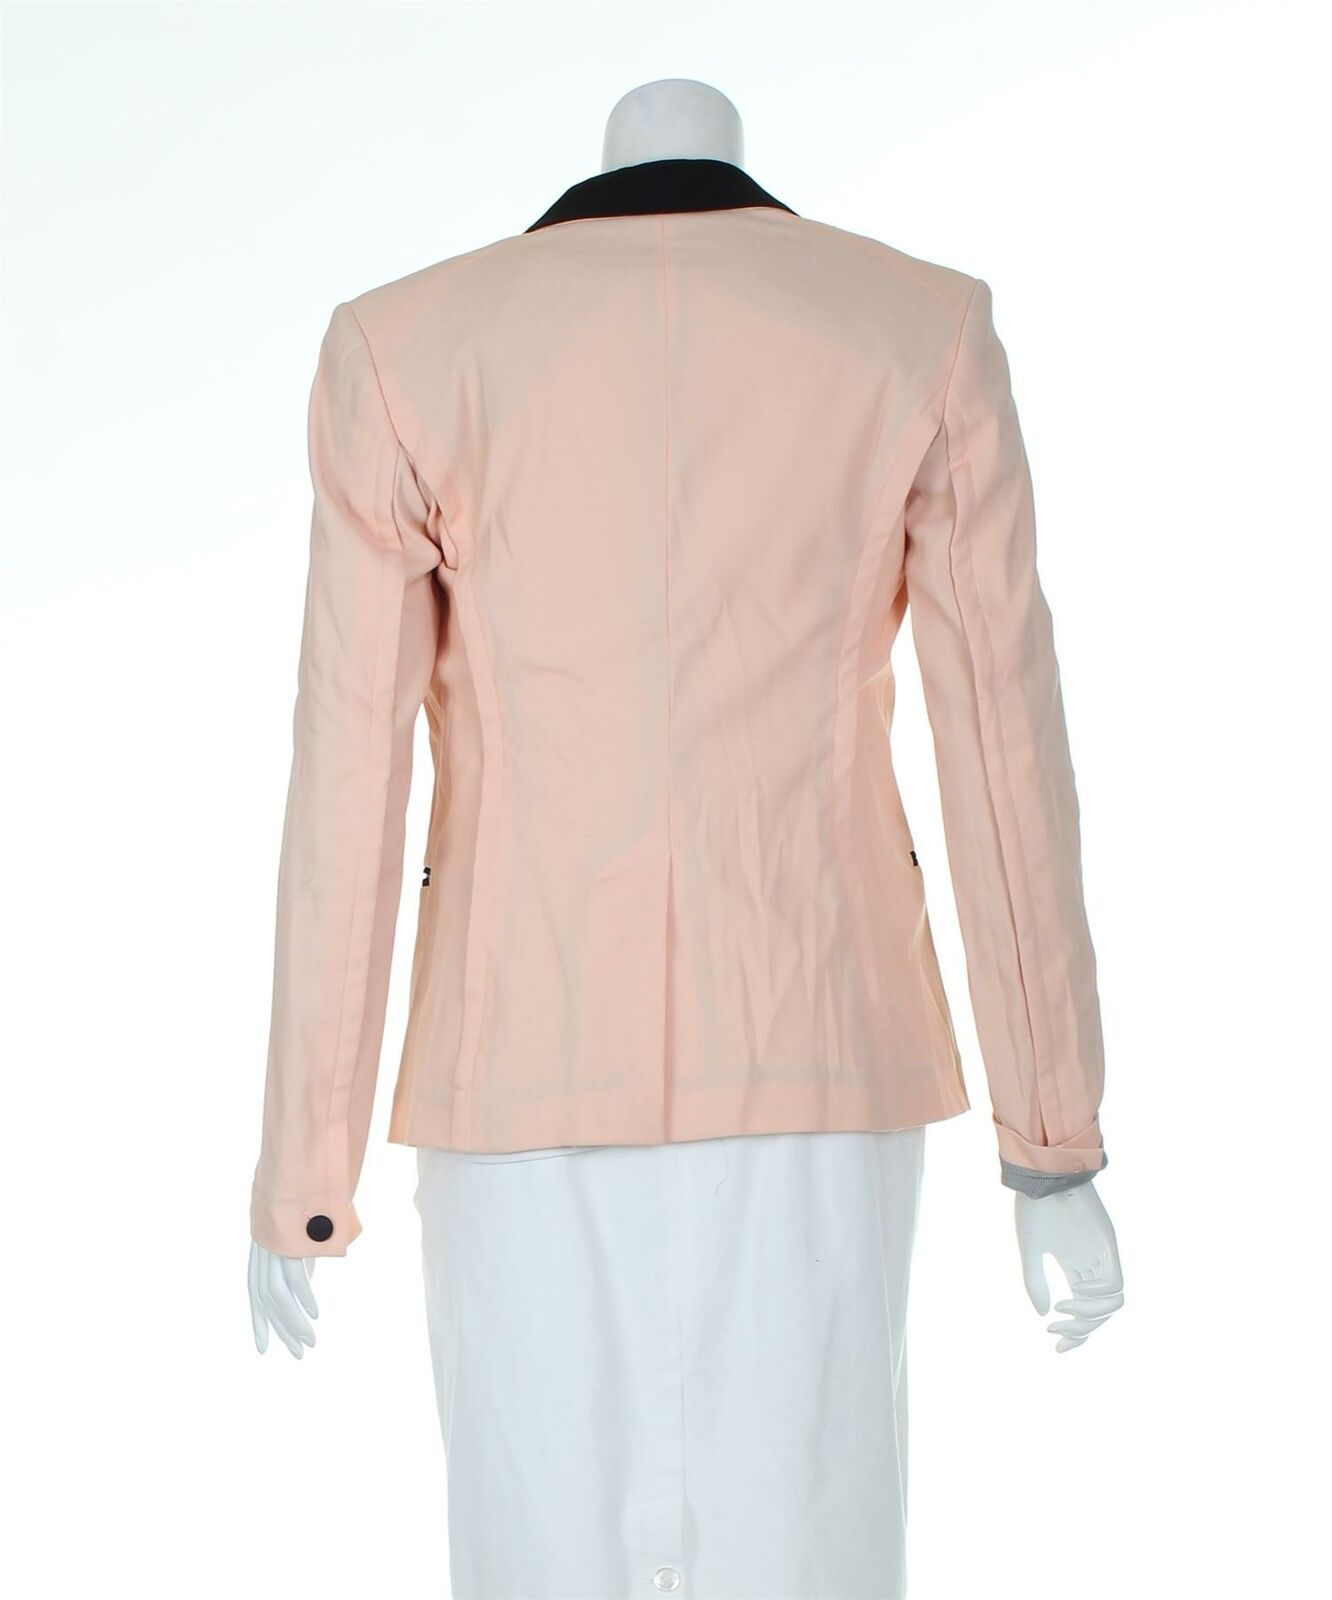 RAG & BONE Pink And Black Blazer Jacket, UK 6 US … - image 3